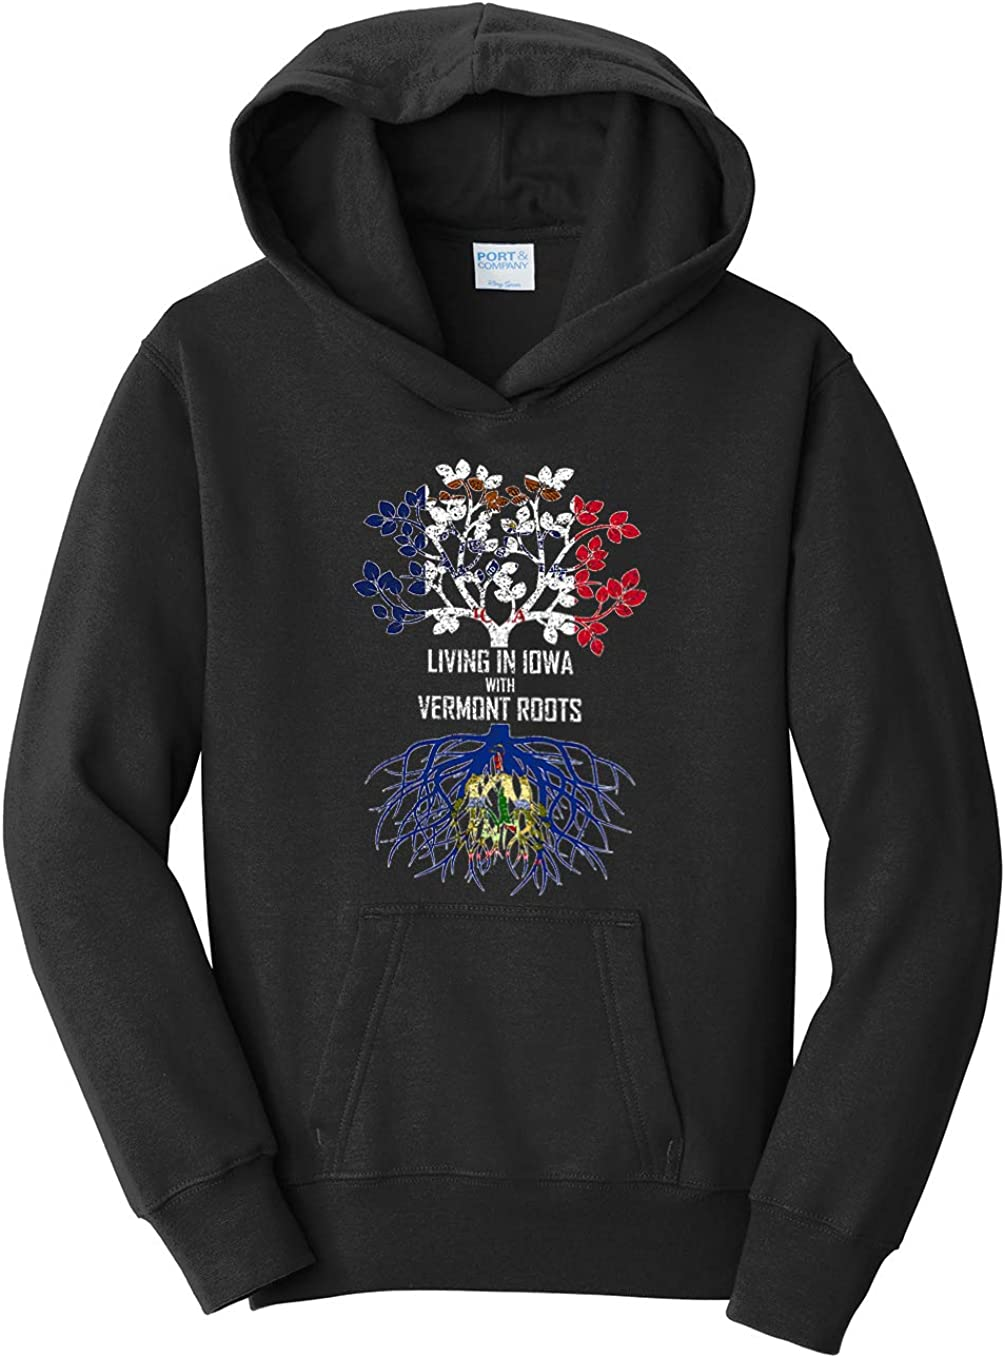 Tenacitee Girls Youth Living in Iowa with Vermont Roots Hooded Sweatshirt Black Large